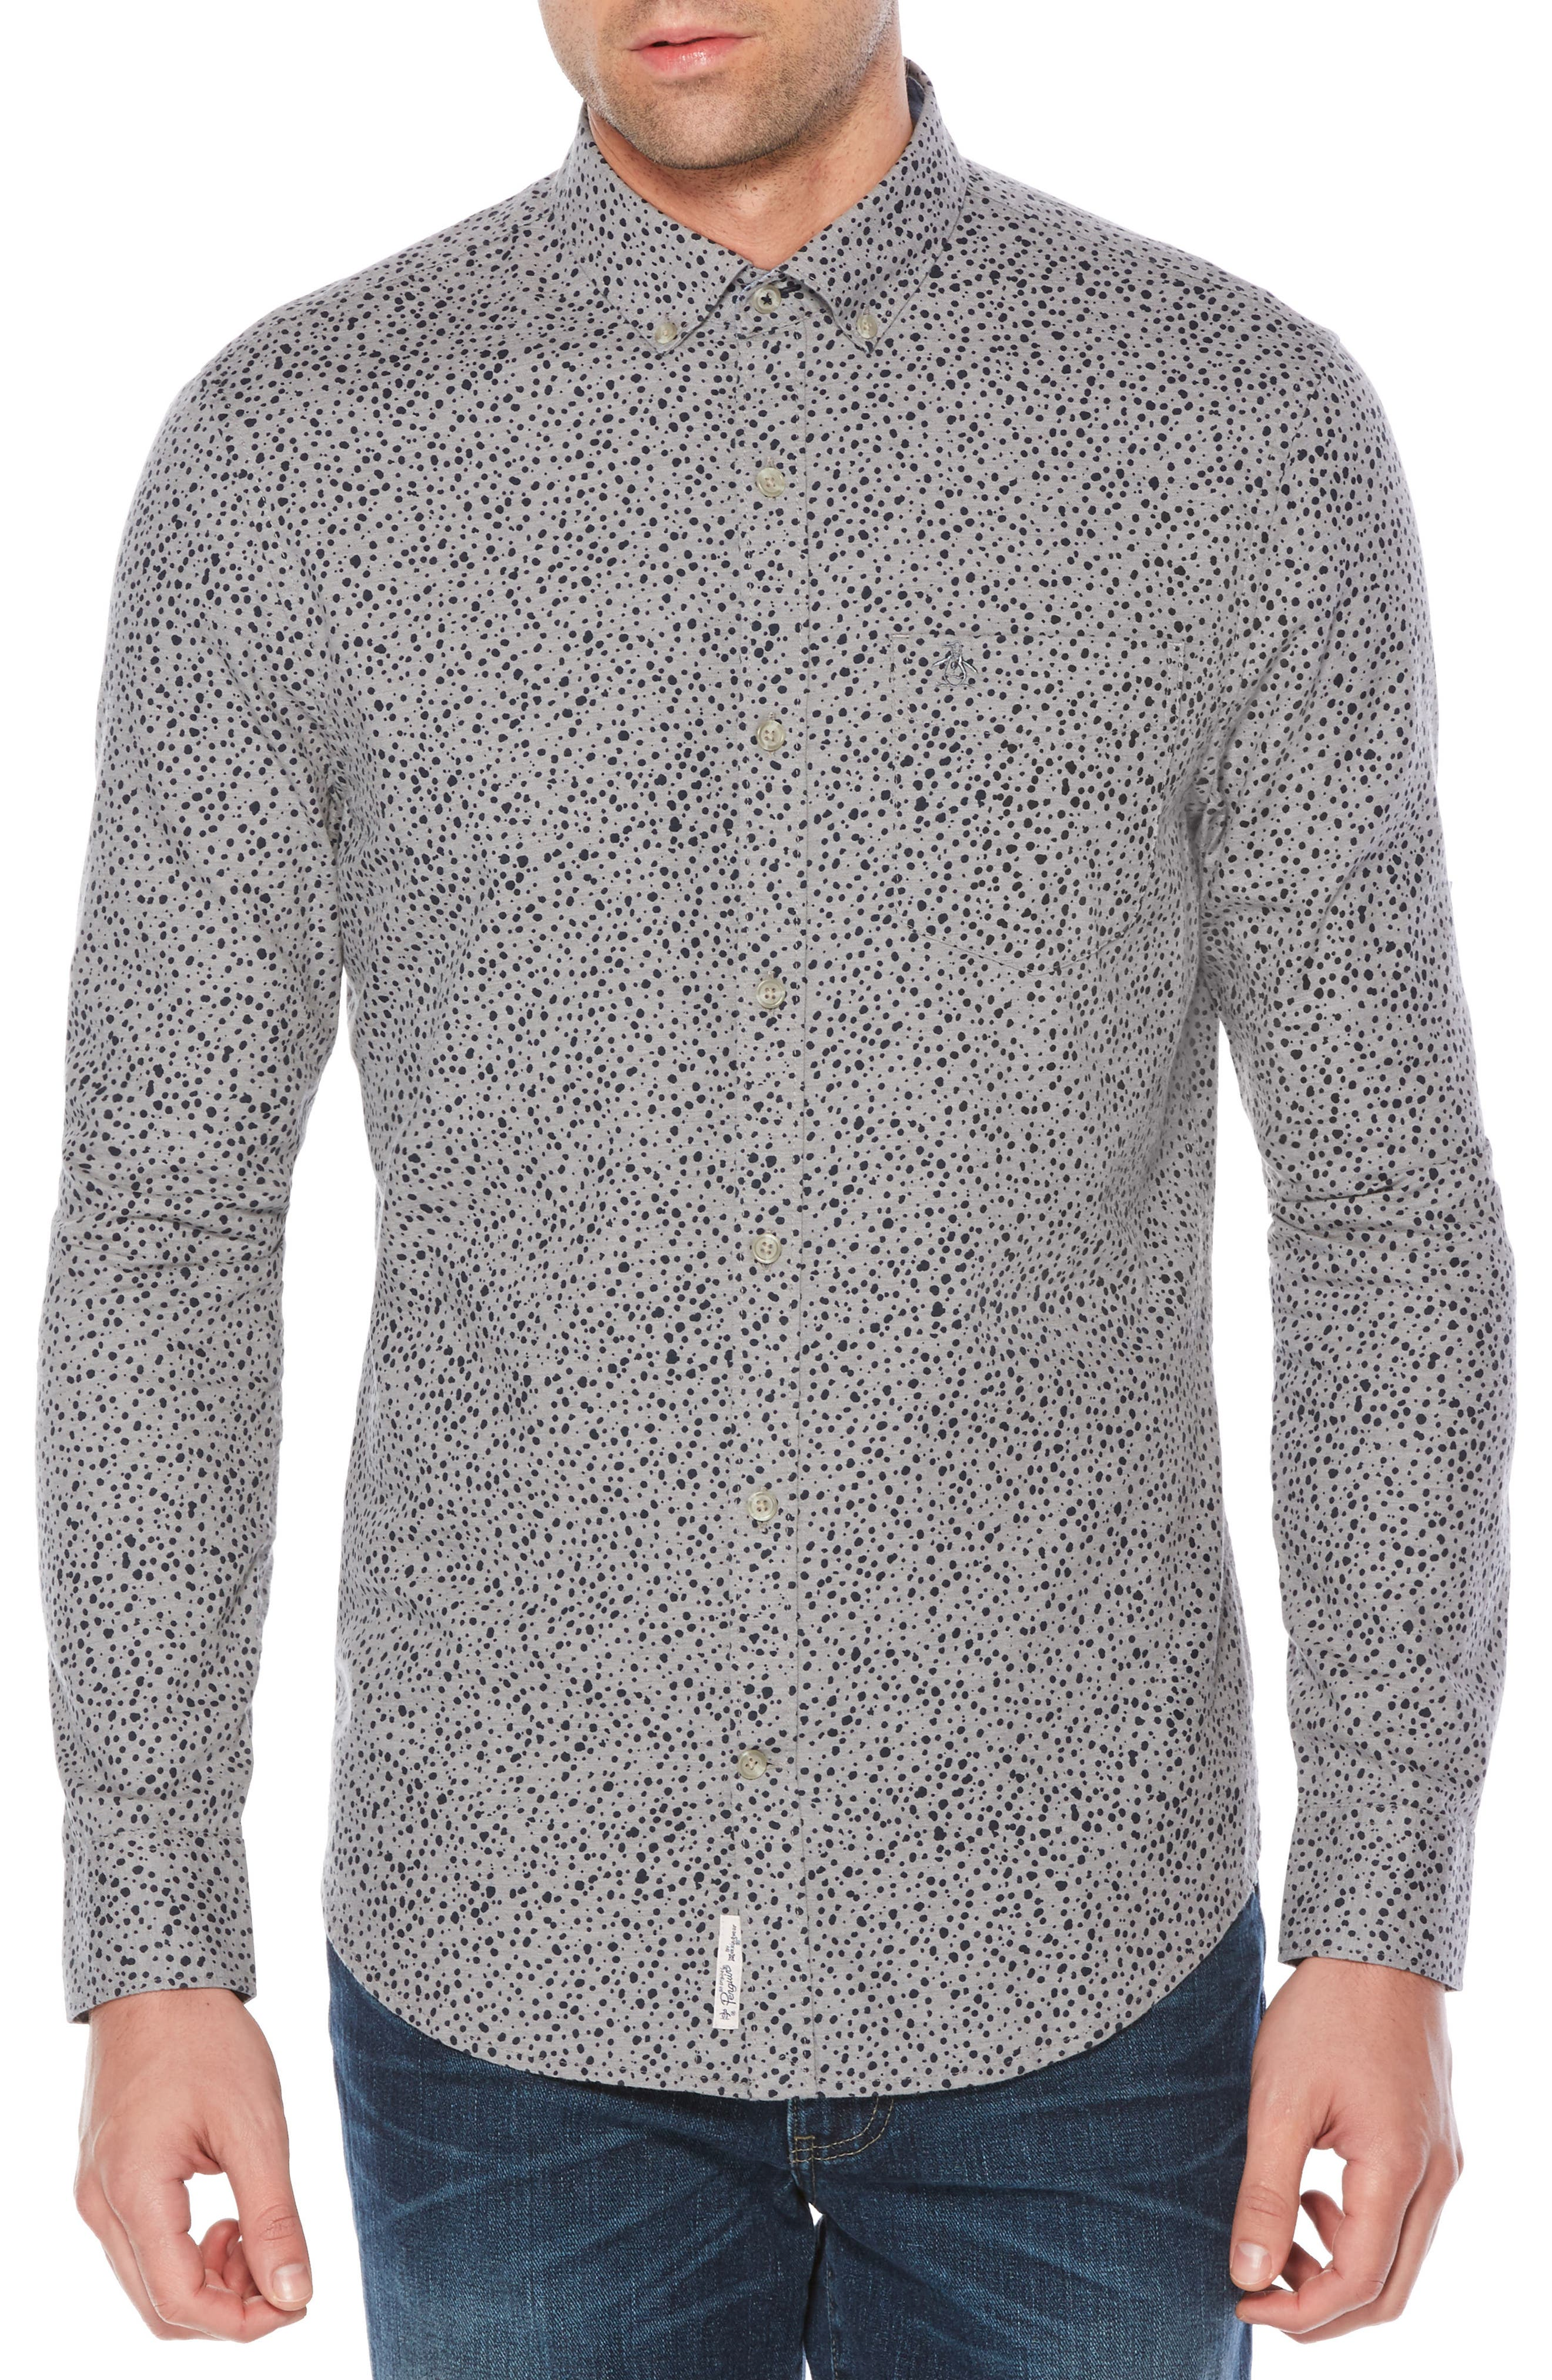 Main Image - Original Penguin Drop Print Shirt